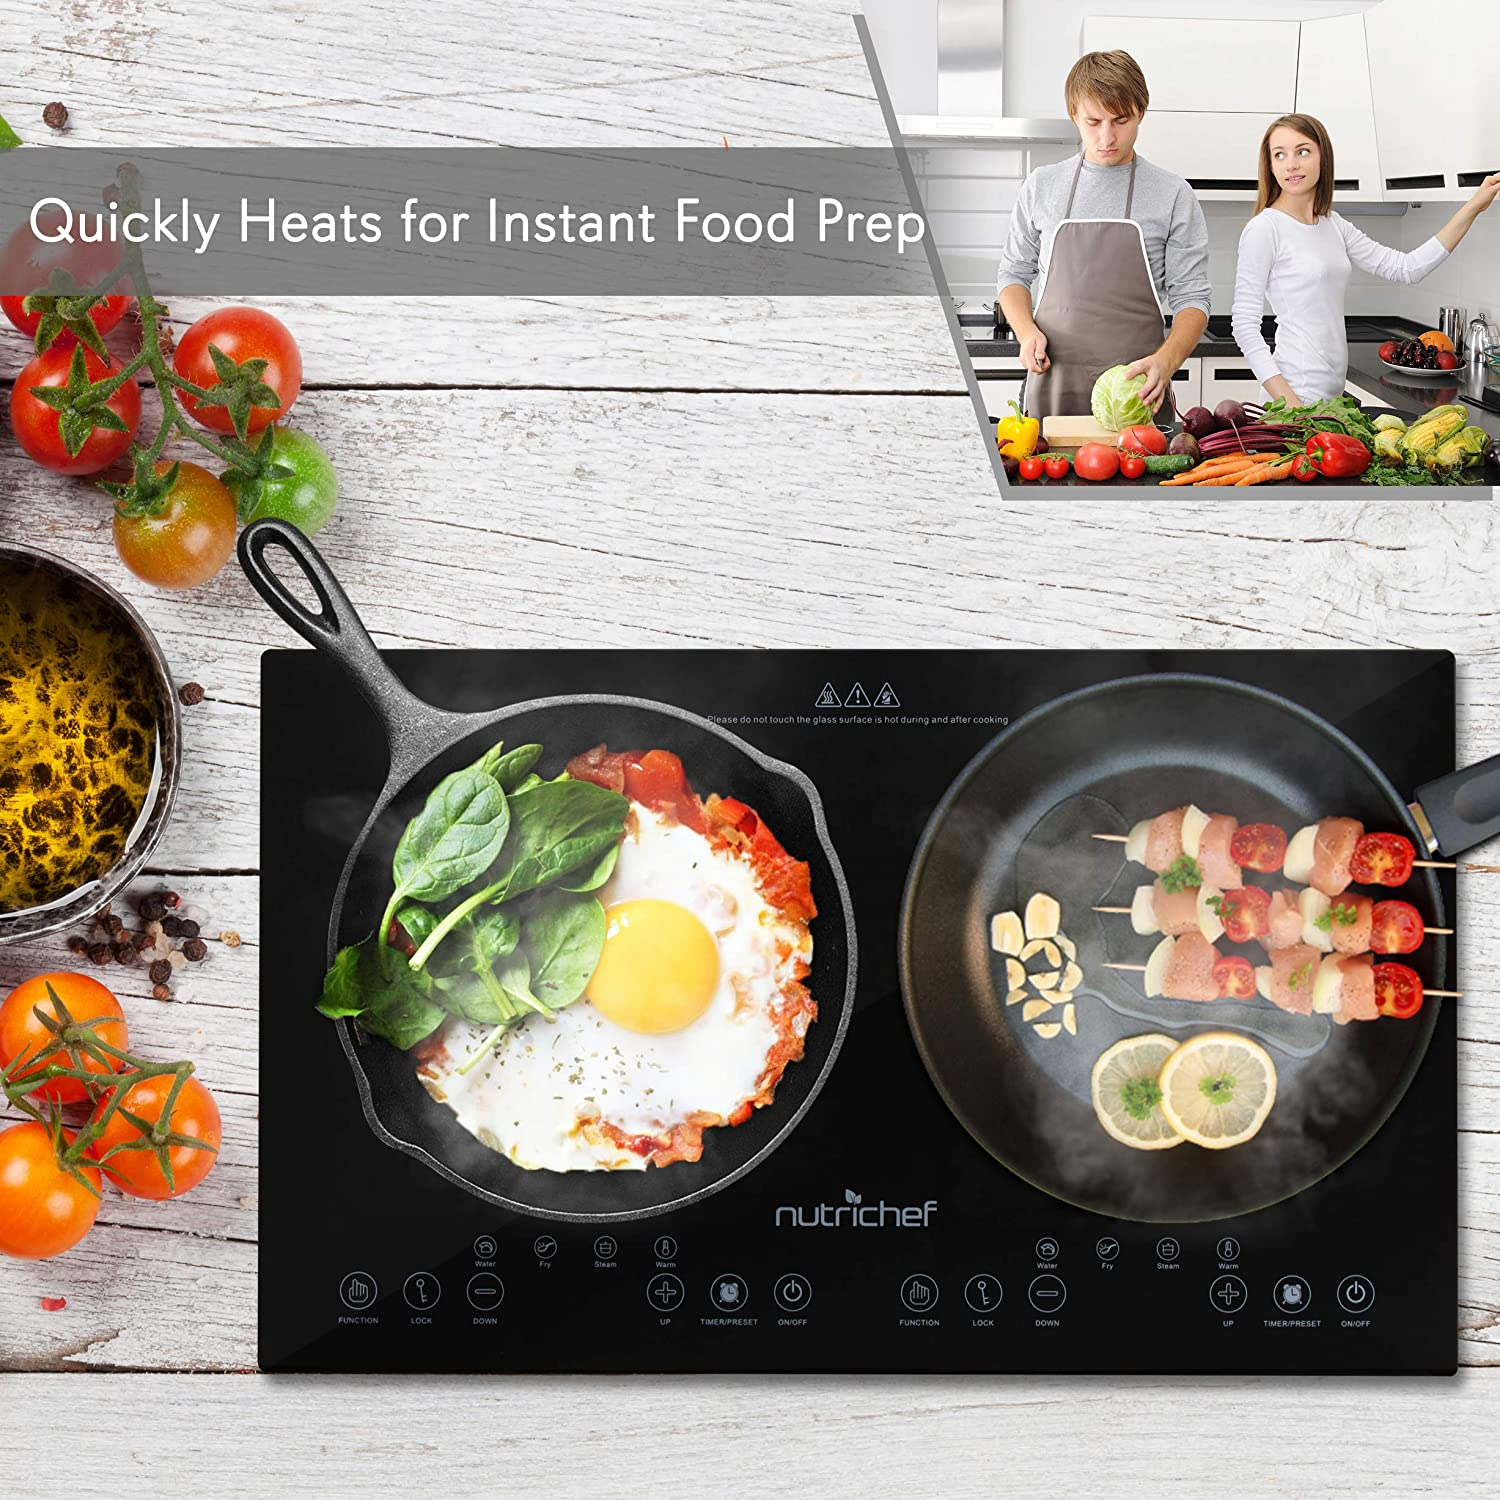 NutriChef - Double Induction stove Cook top